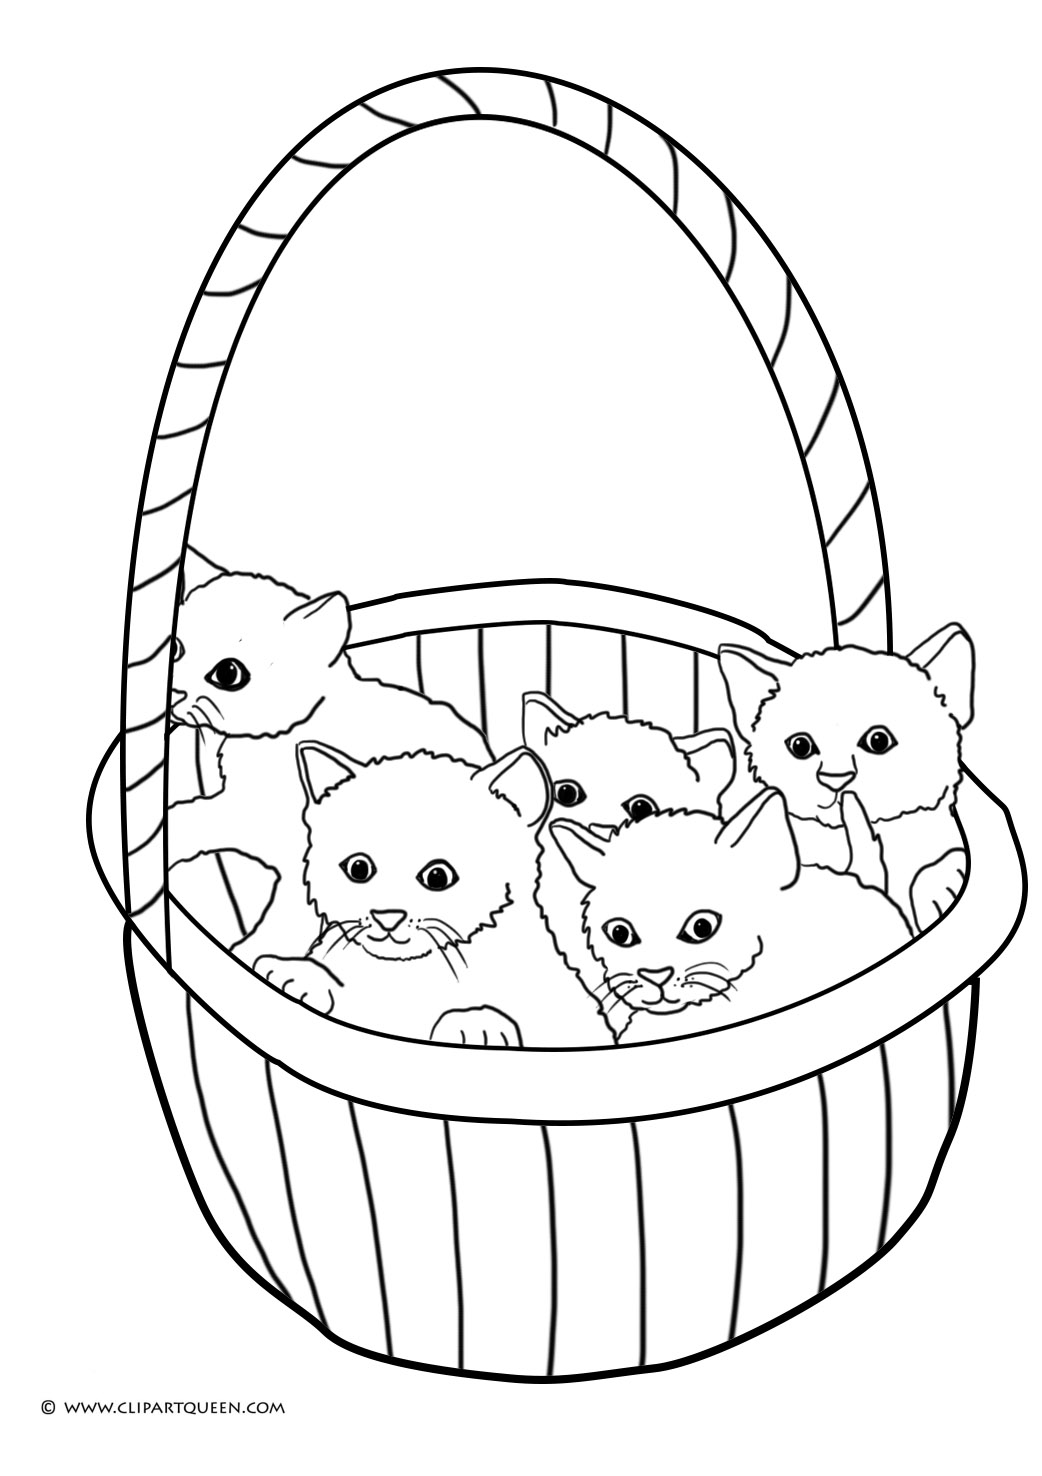 Cat Catching Butterfly Five Kittens In A Basket Cute Coloring Page